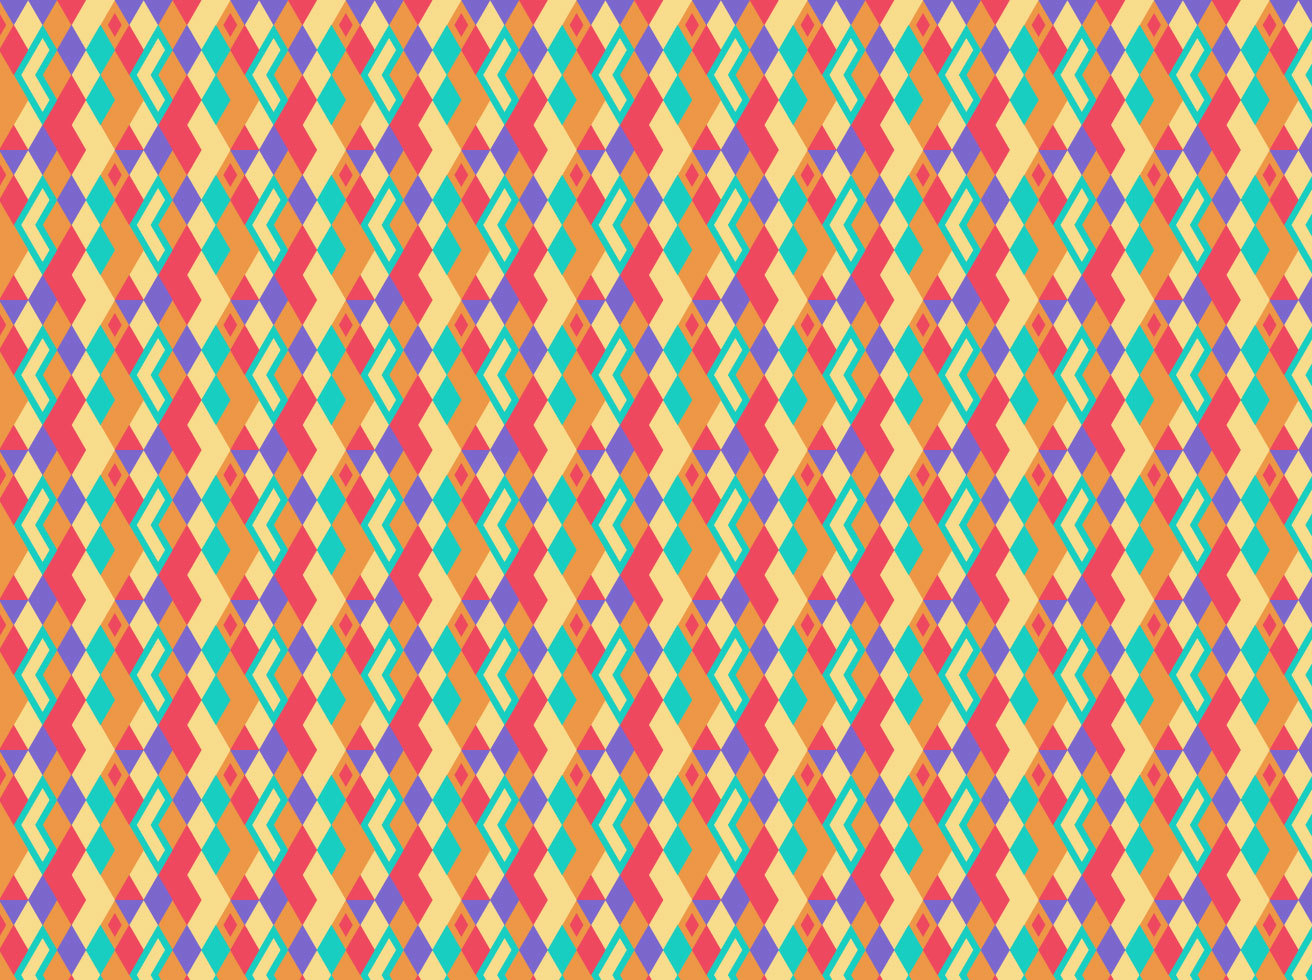 Free Rainbow Colored Background Vector